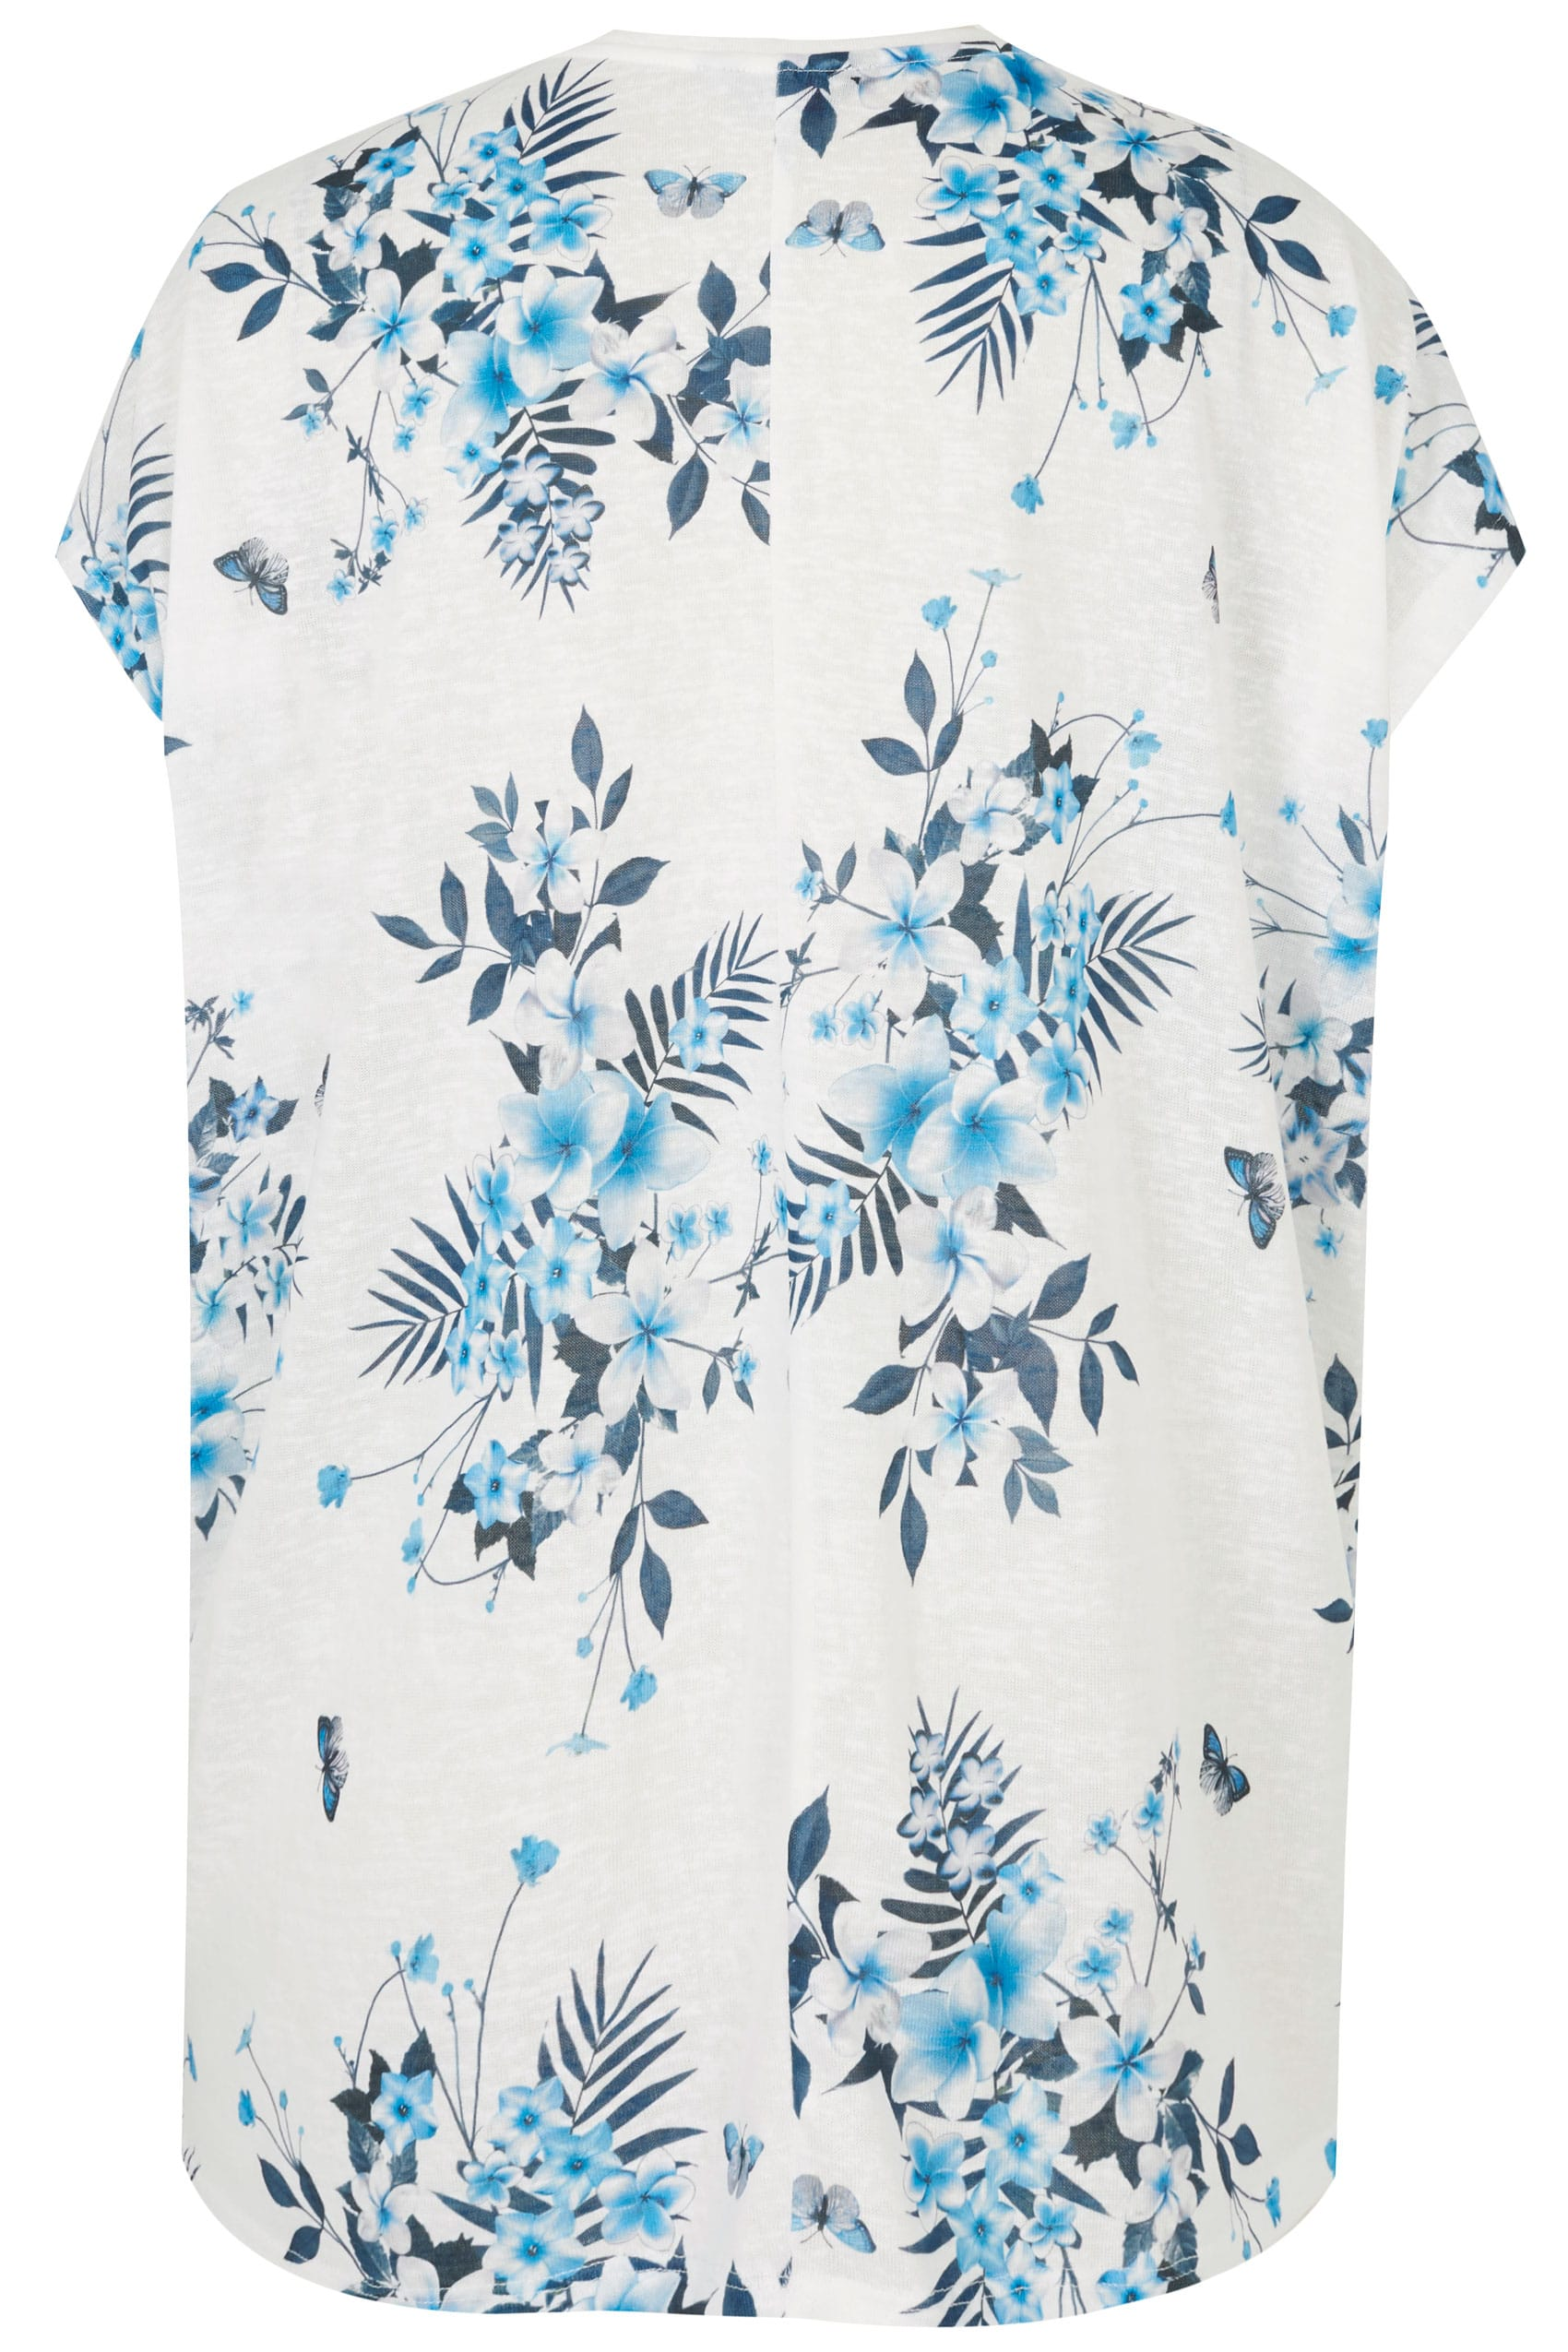 white blue floral print top with grown on sleeves plus size 16 to 36. Black Bedroom Furniture Sets. Home Design Ideas